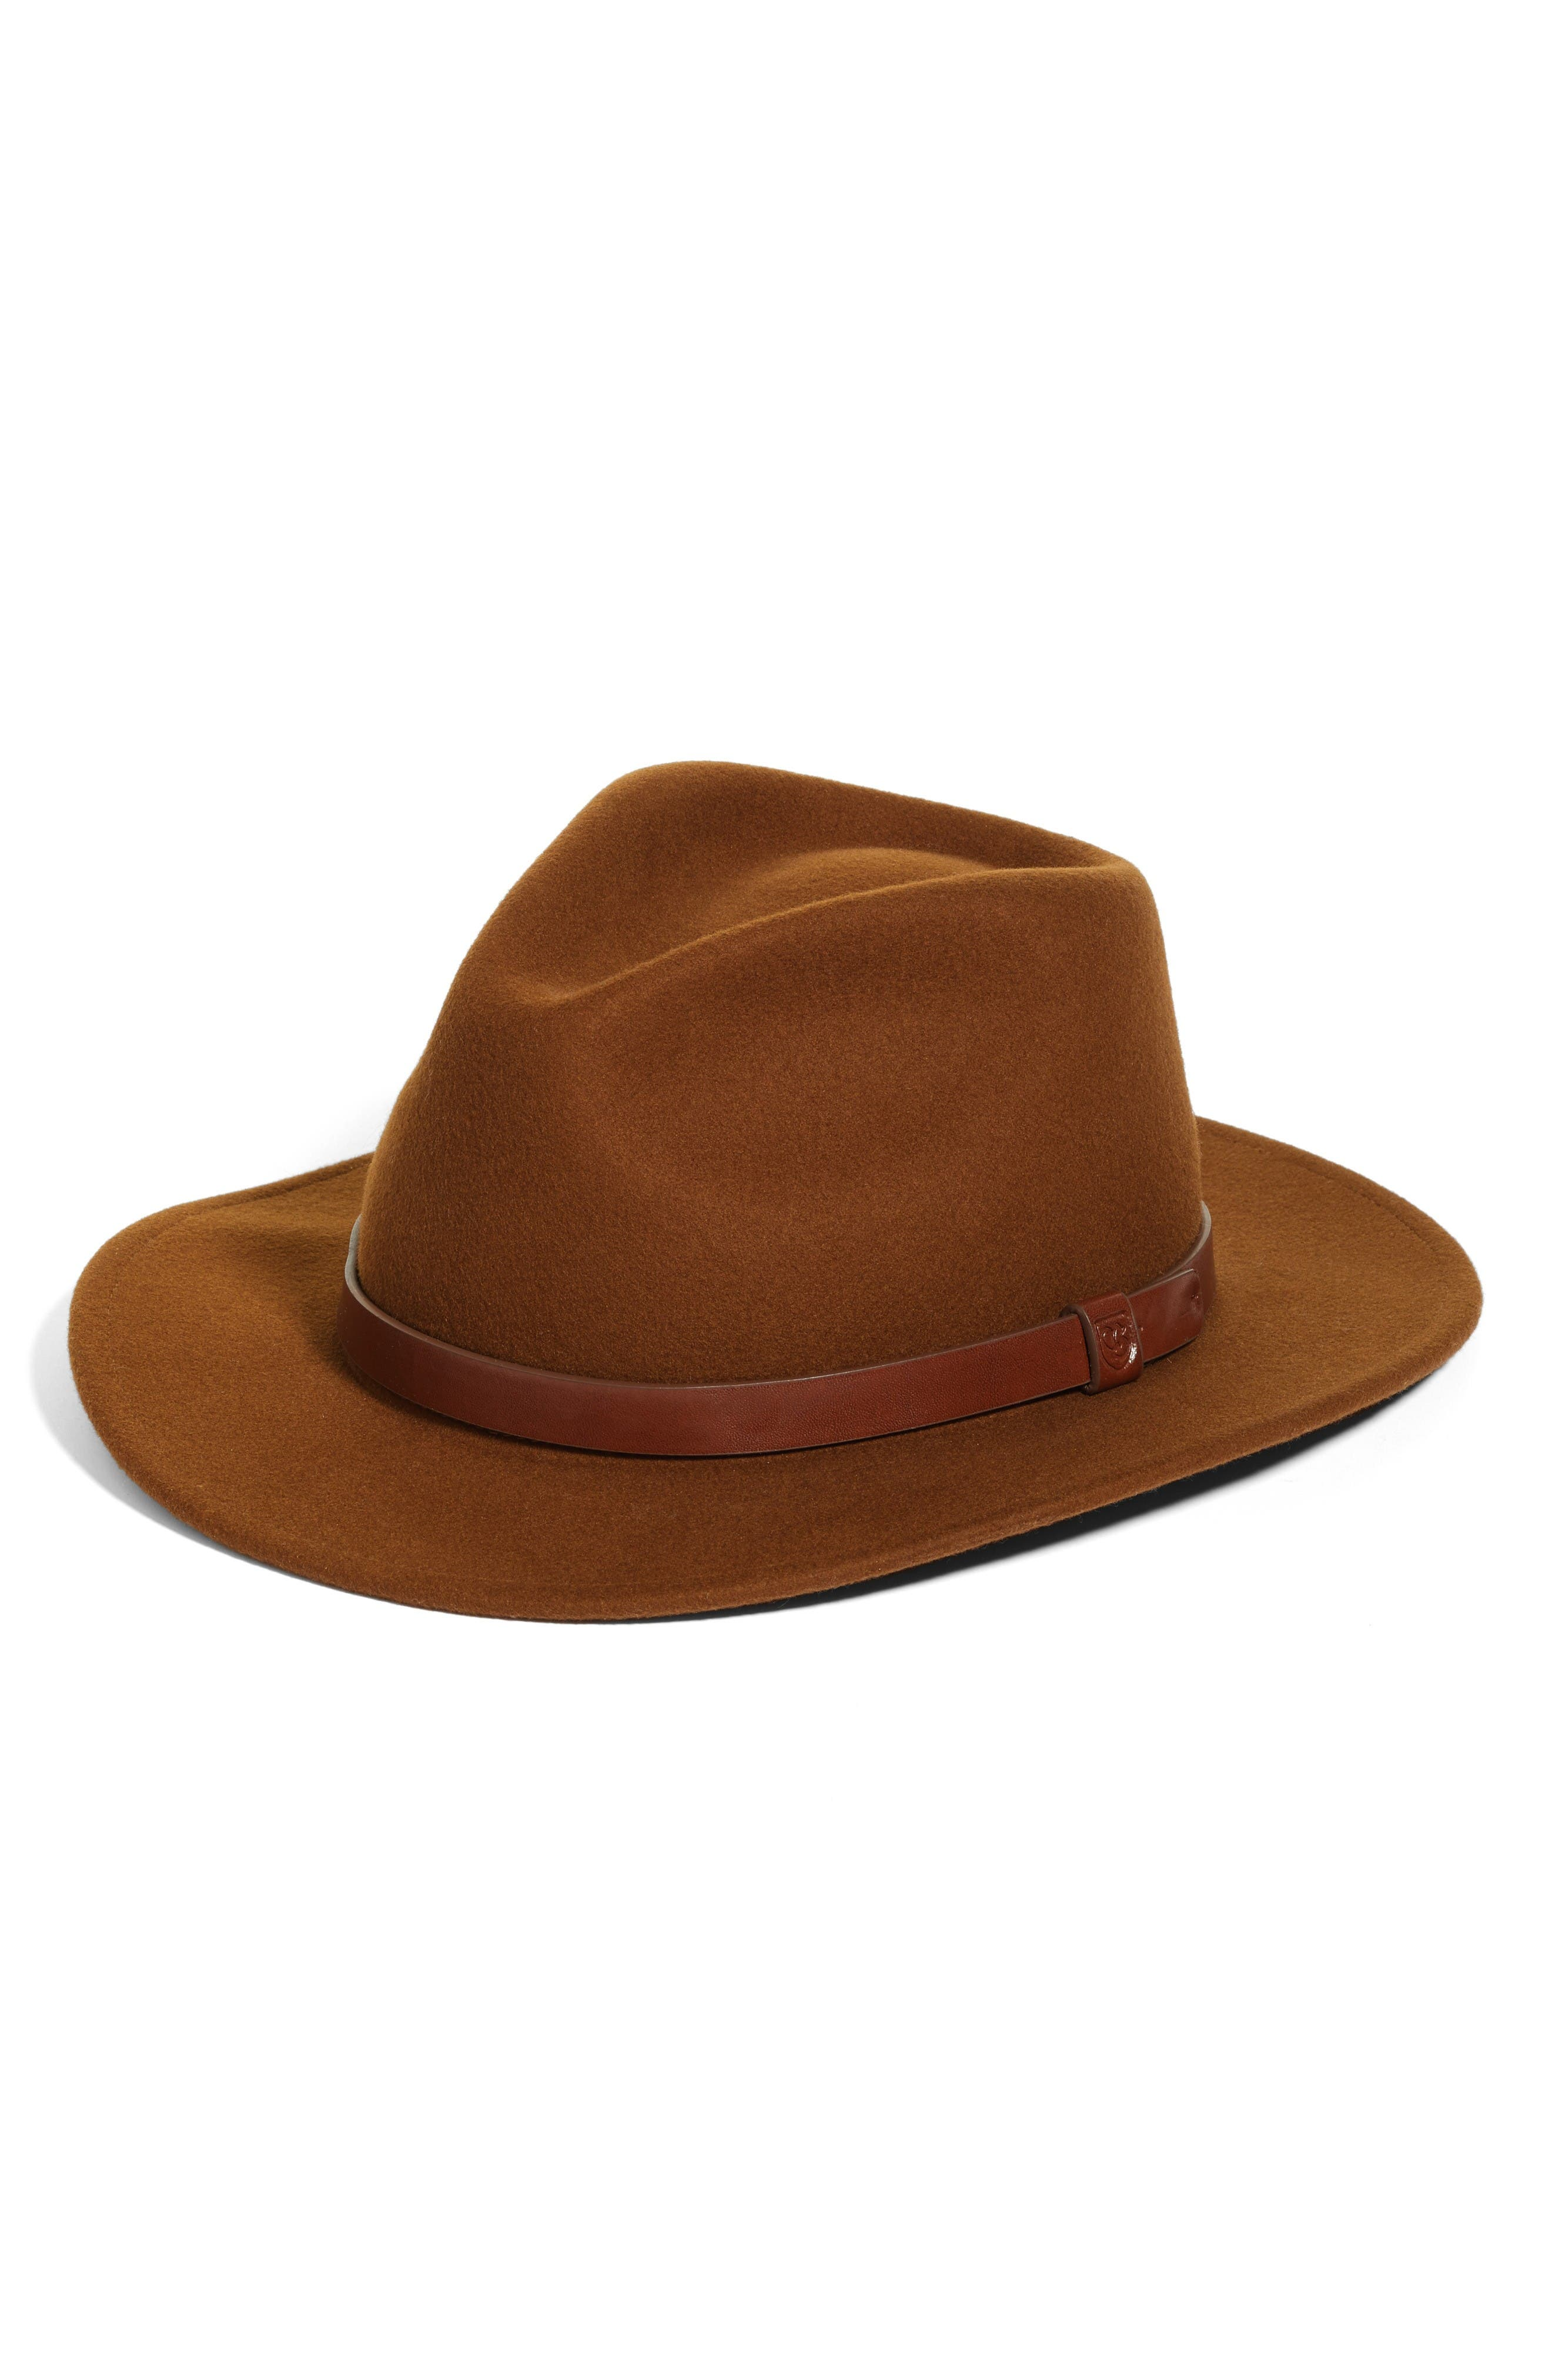 rag & bone Wool Trilby Hat available at #Nordstrom. Fadora hats Classic Hats Fashion:: Hats Fashion Accessories Men's Fashion Men's Hats Well Dressed Men. Stylish Hats Guy Style. A good fitting fedora is a staple. This heathered wool version with the leather strap and tan corduroy rim is so FRY. from Pinterest. Deluxe Felt Derby - Camel.